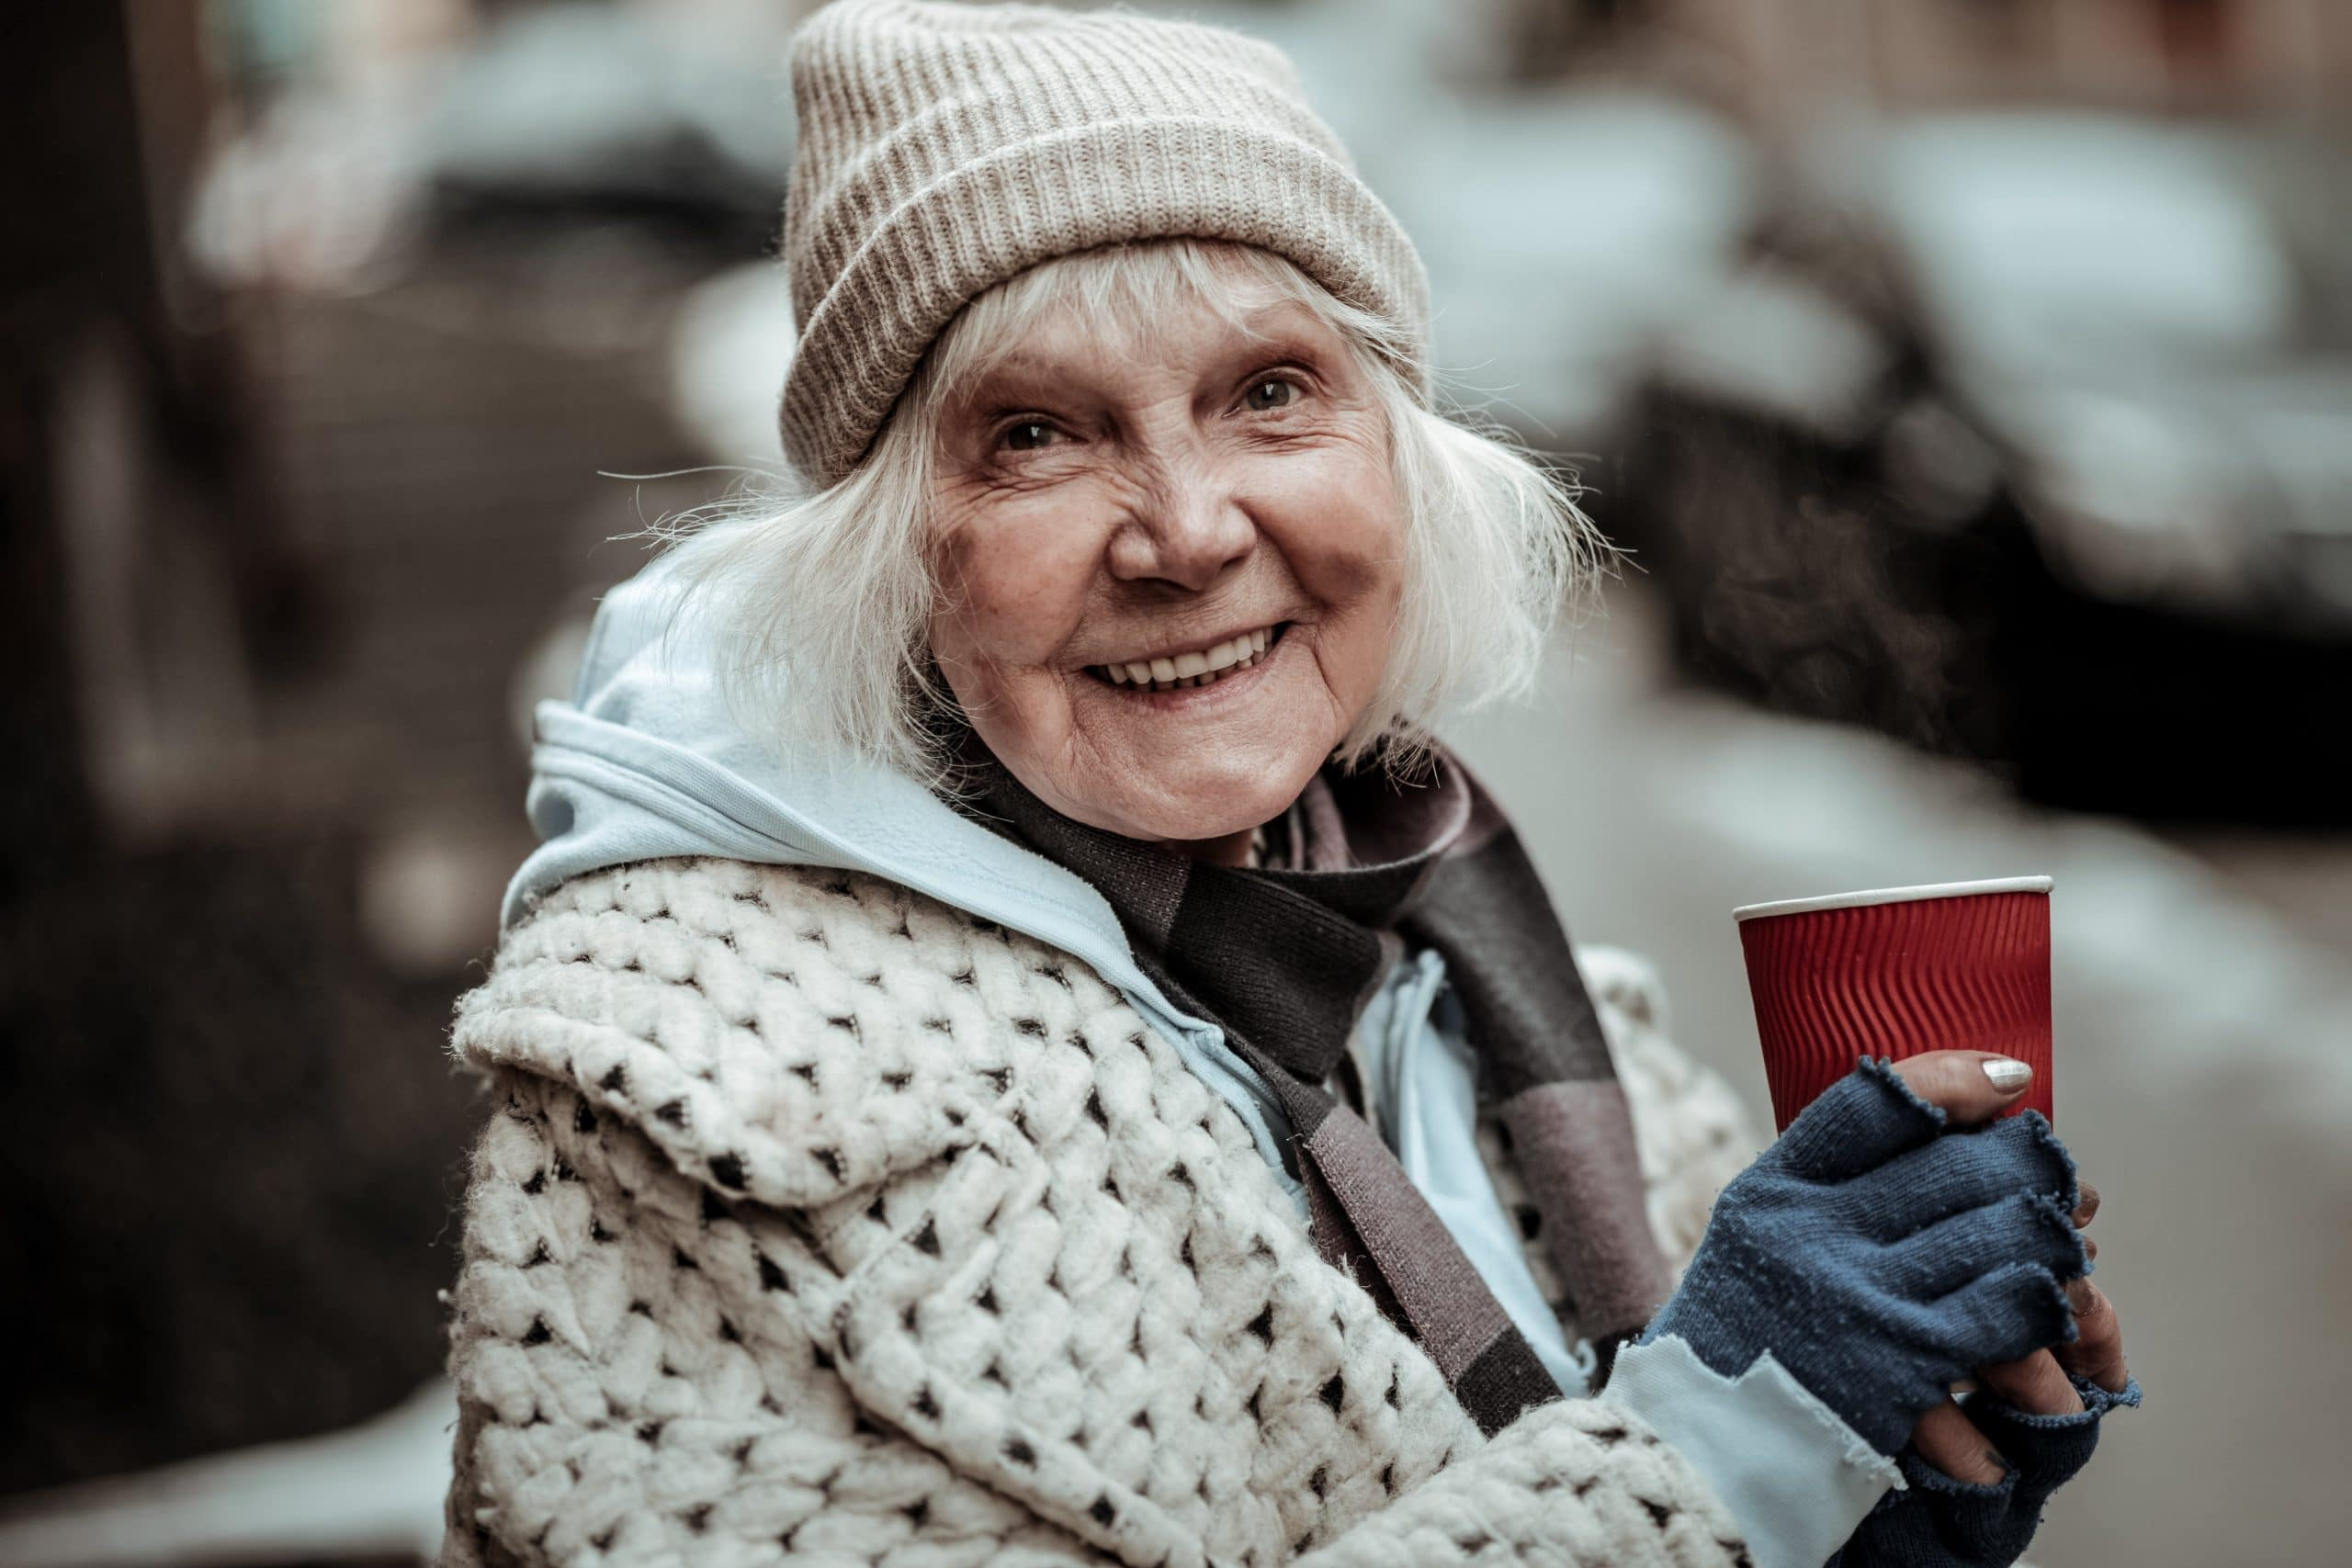 Homeless lady enjoying a warm beverage